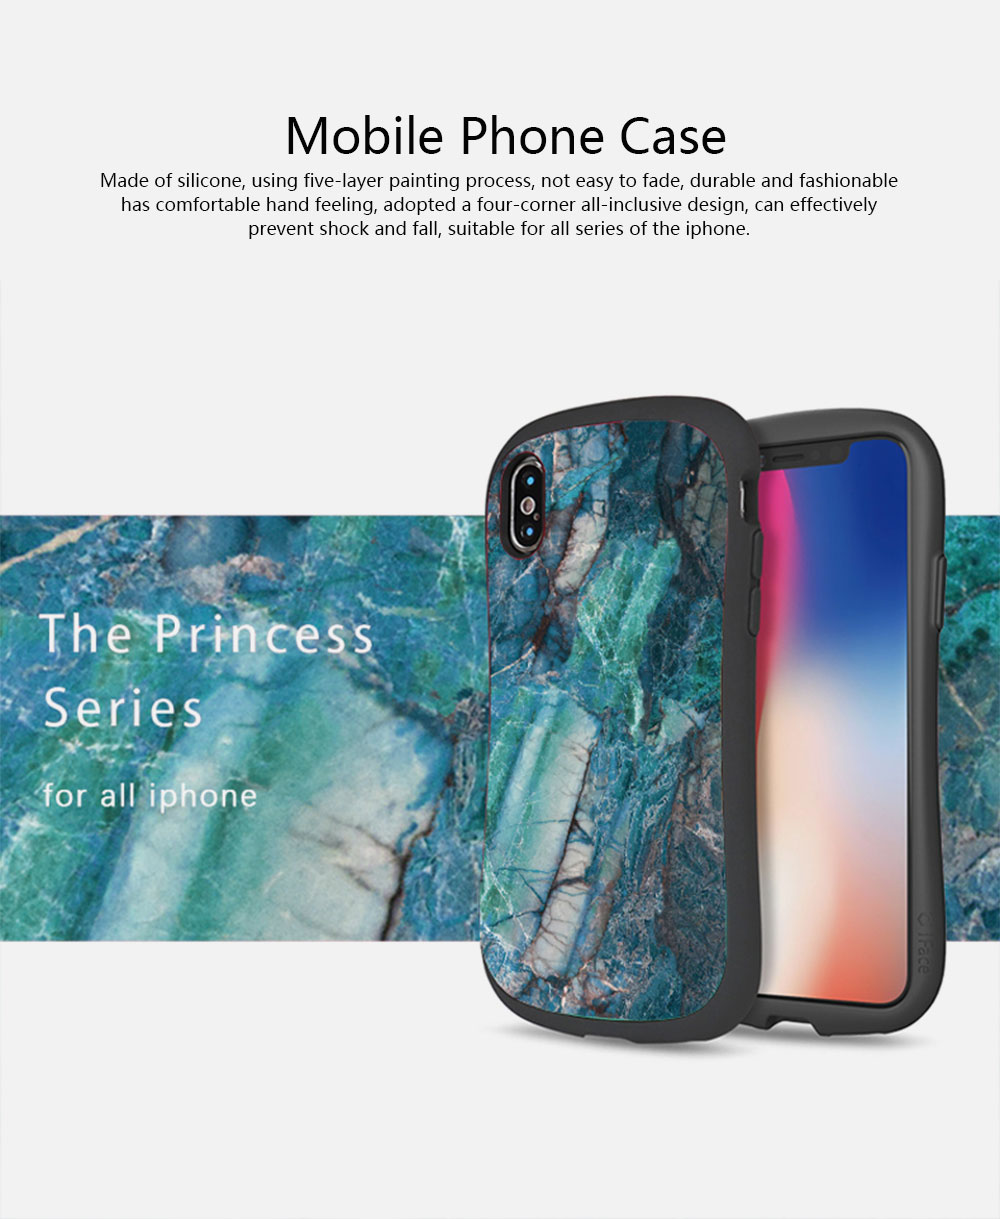 Creativity Silicone All-inclusive Fall Prevention Sling Mobile Phone Shell for iPhone 8 Plus & 7P & 6S 0